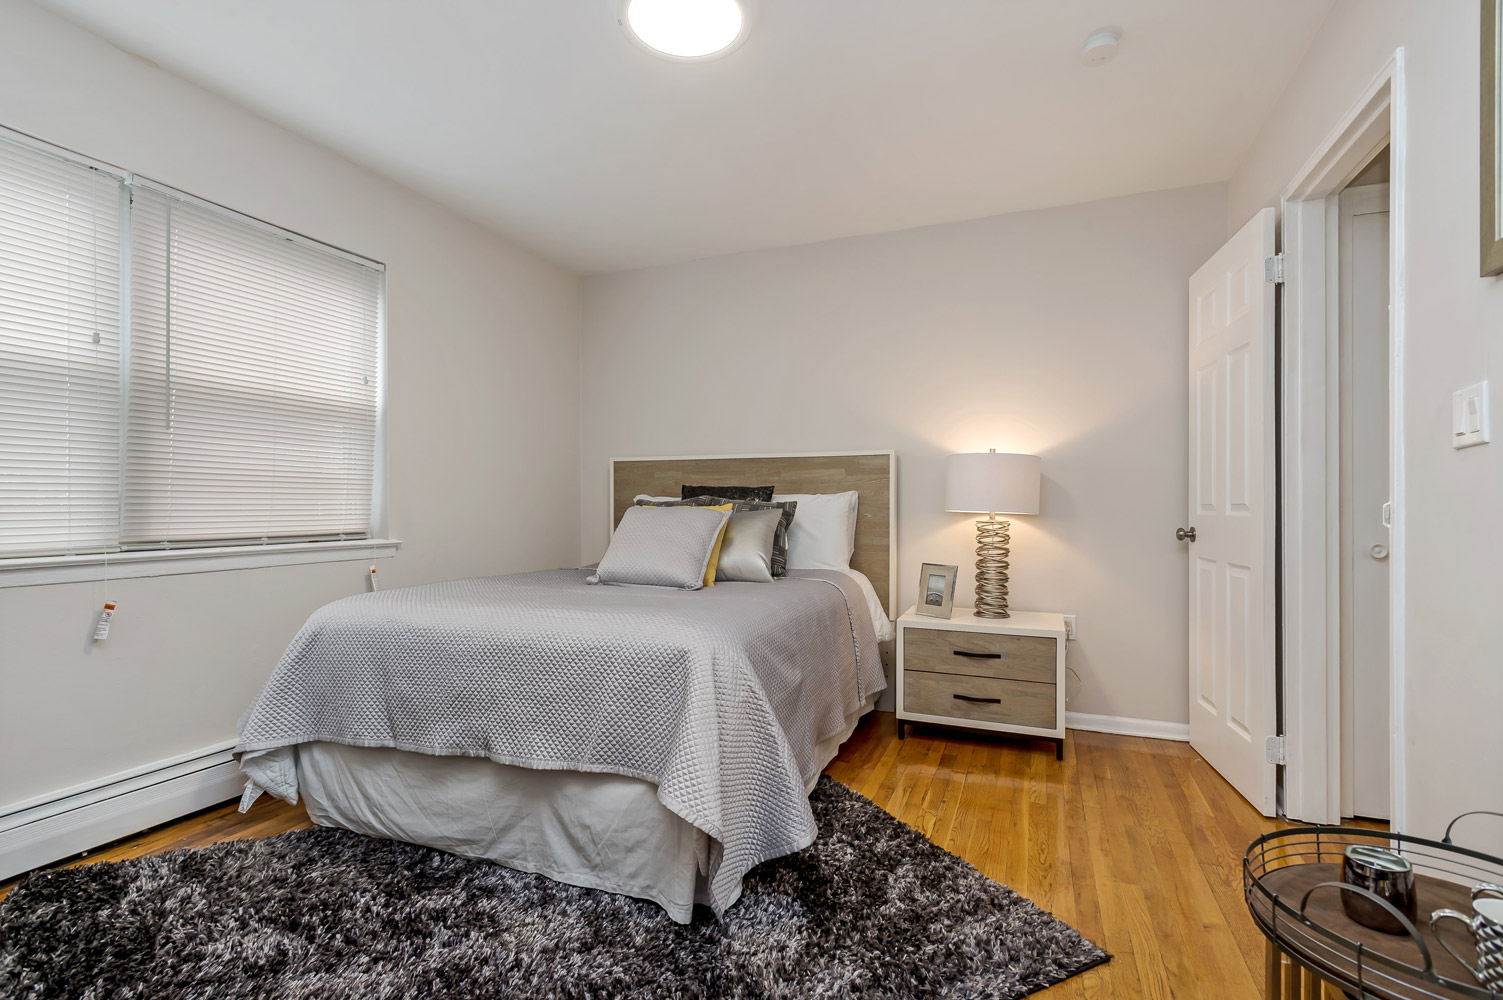 One Bedroom Apartment at Grandview Gardens Apartments in Edison, New Jersey